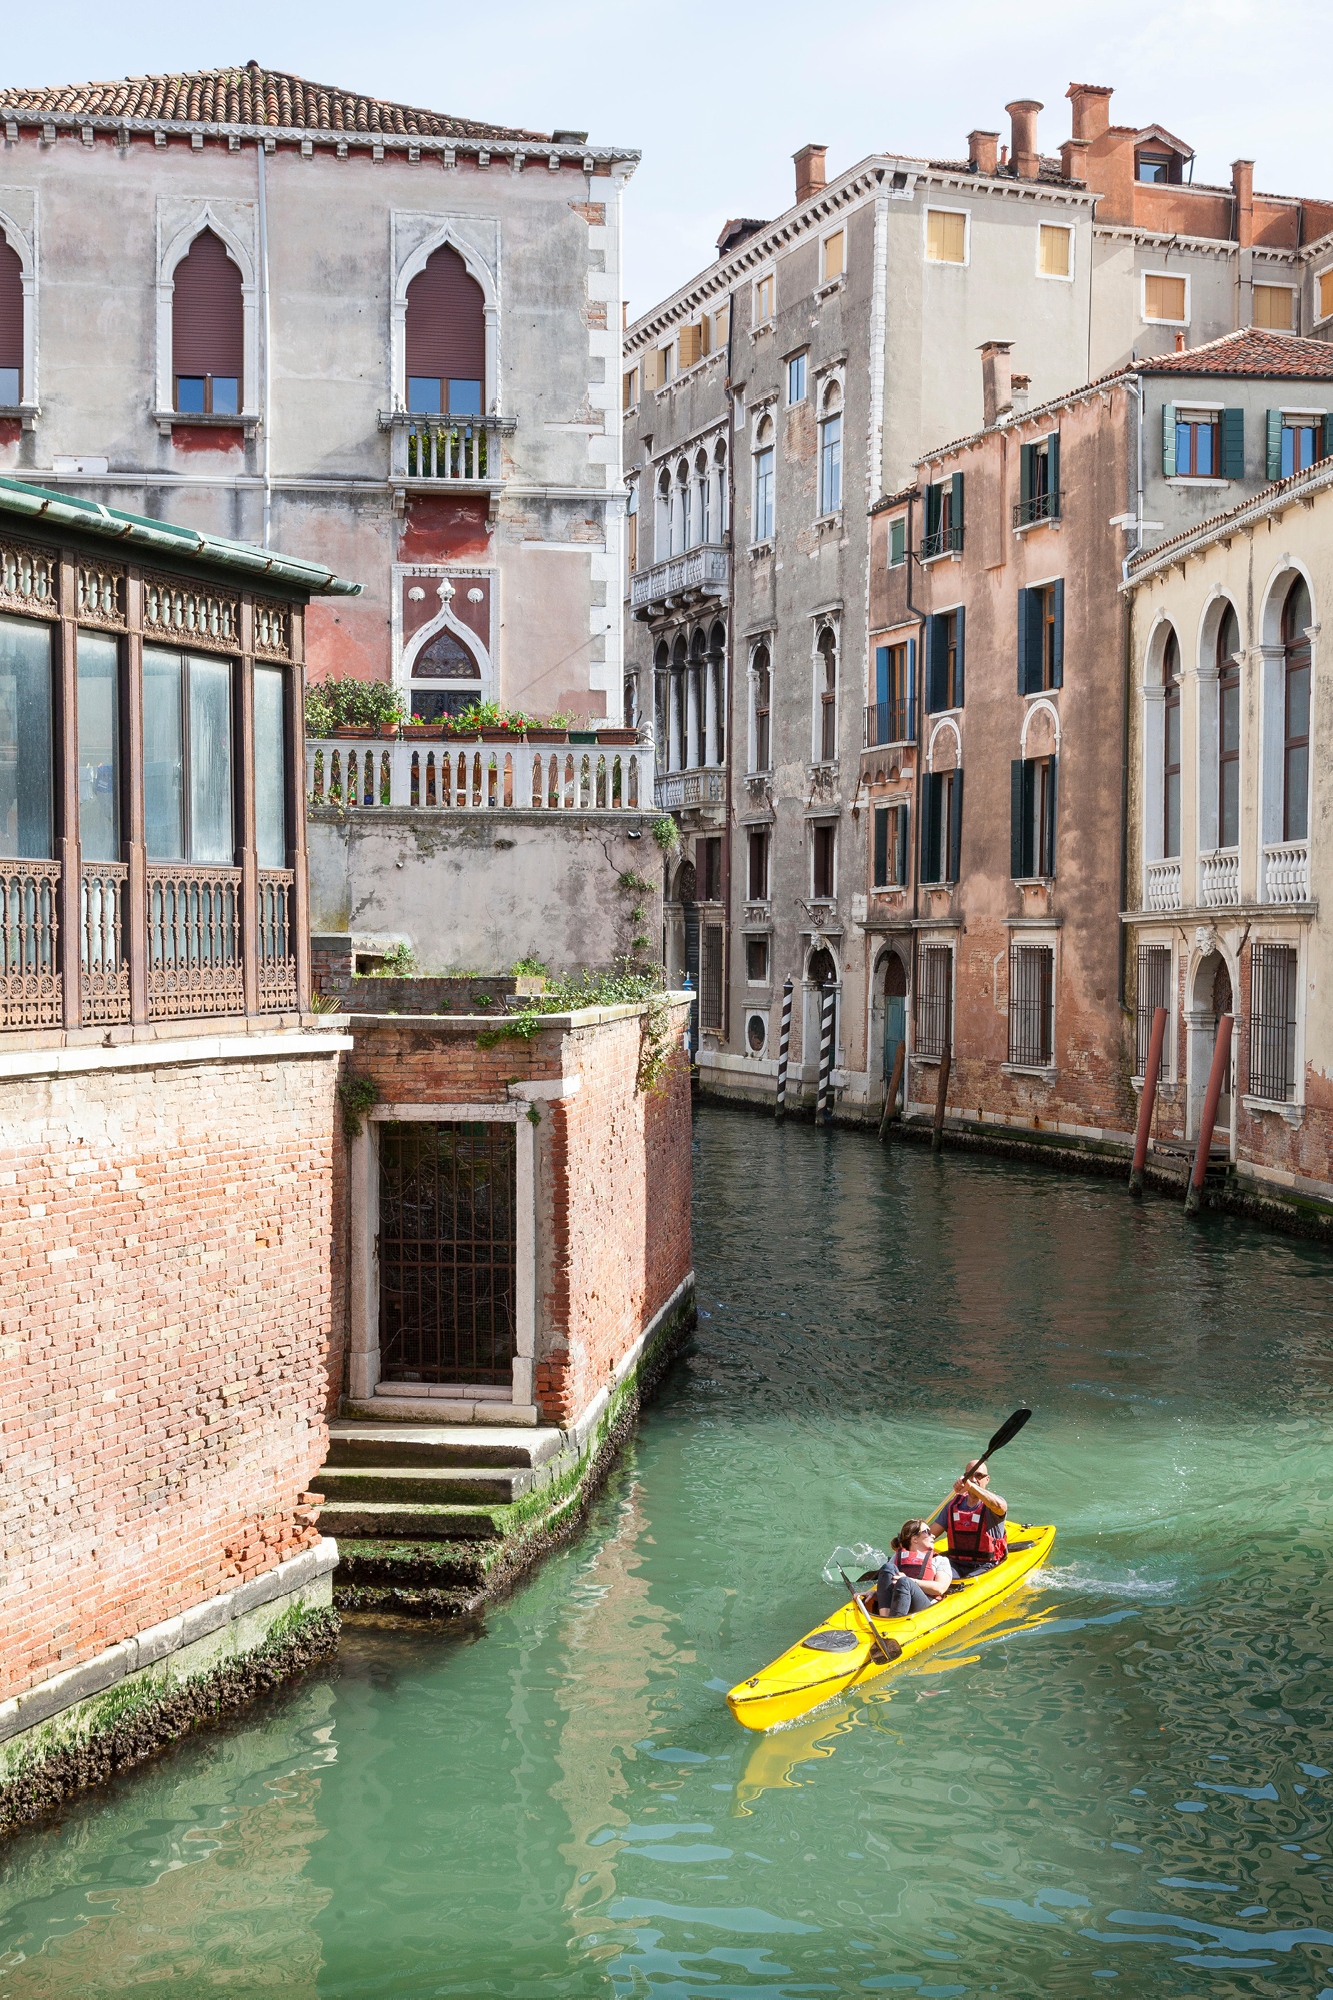 Kayaking through Venice offers a new perspective of the 'City of Water'